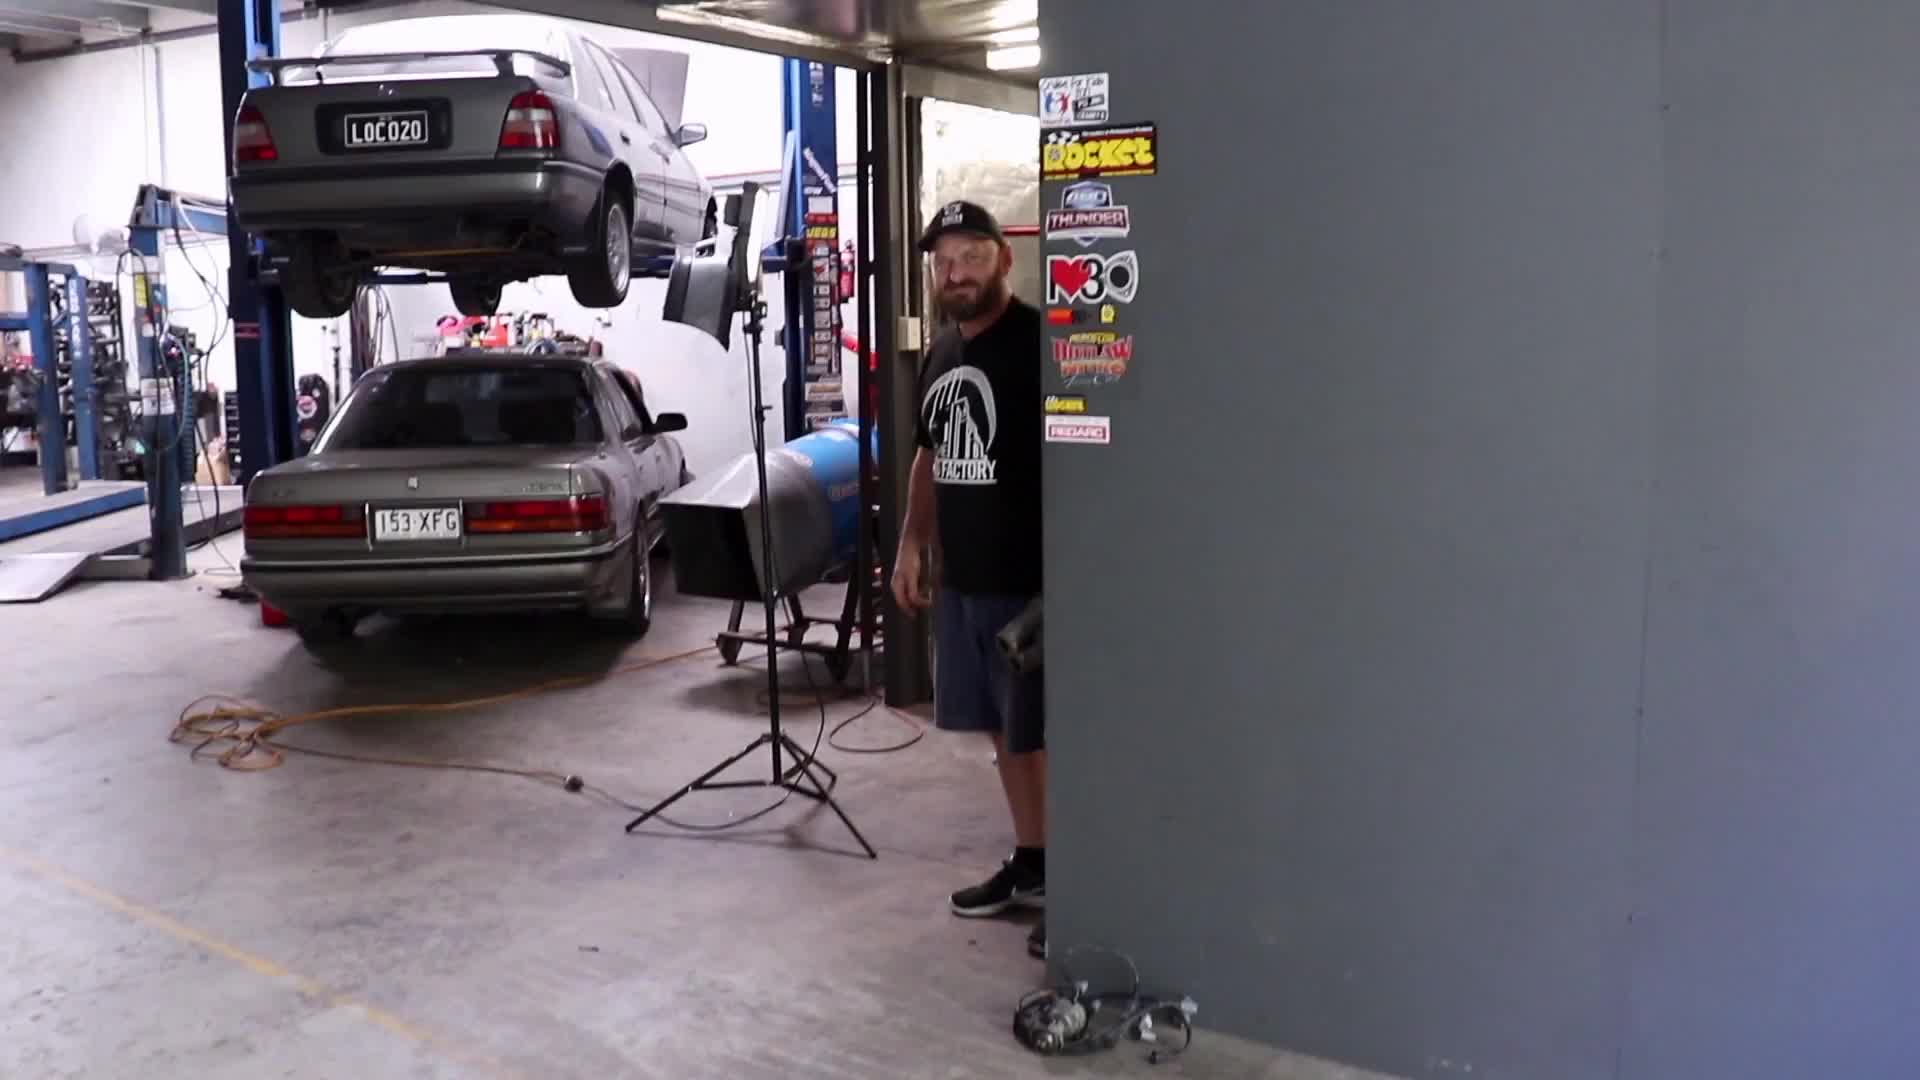 2nd, alan, car, channel, mcm, mcmtv2, mighty, mightycarmods, mods, skid factory, woodie, Alan places grandpa in the bin GIFs